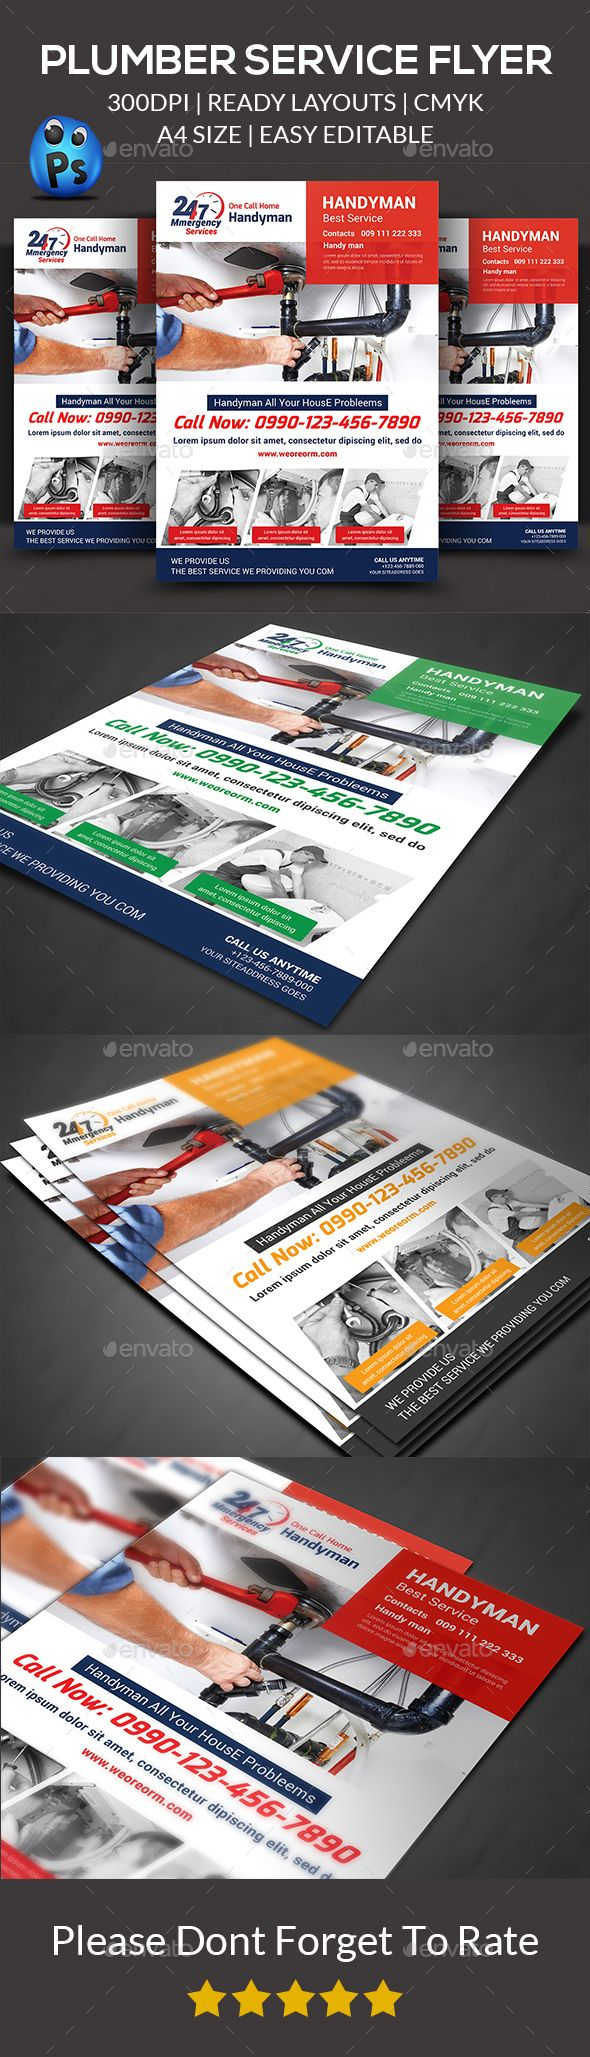 Plumber Service Flyer Templates  Flyer Template Template And